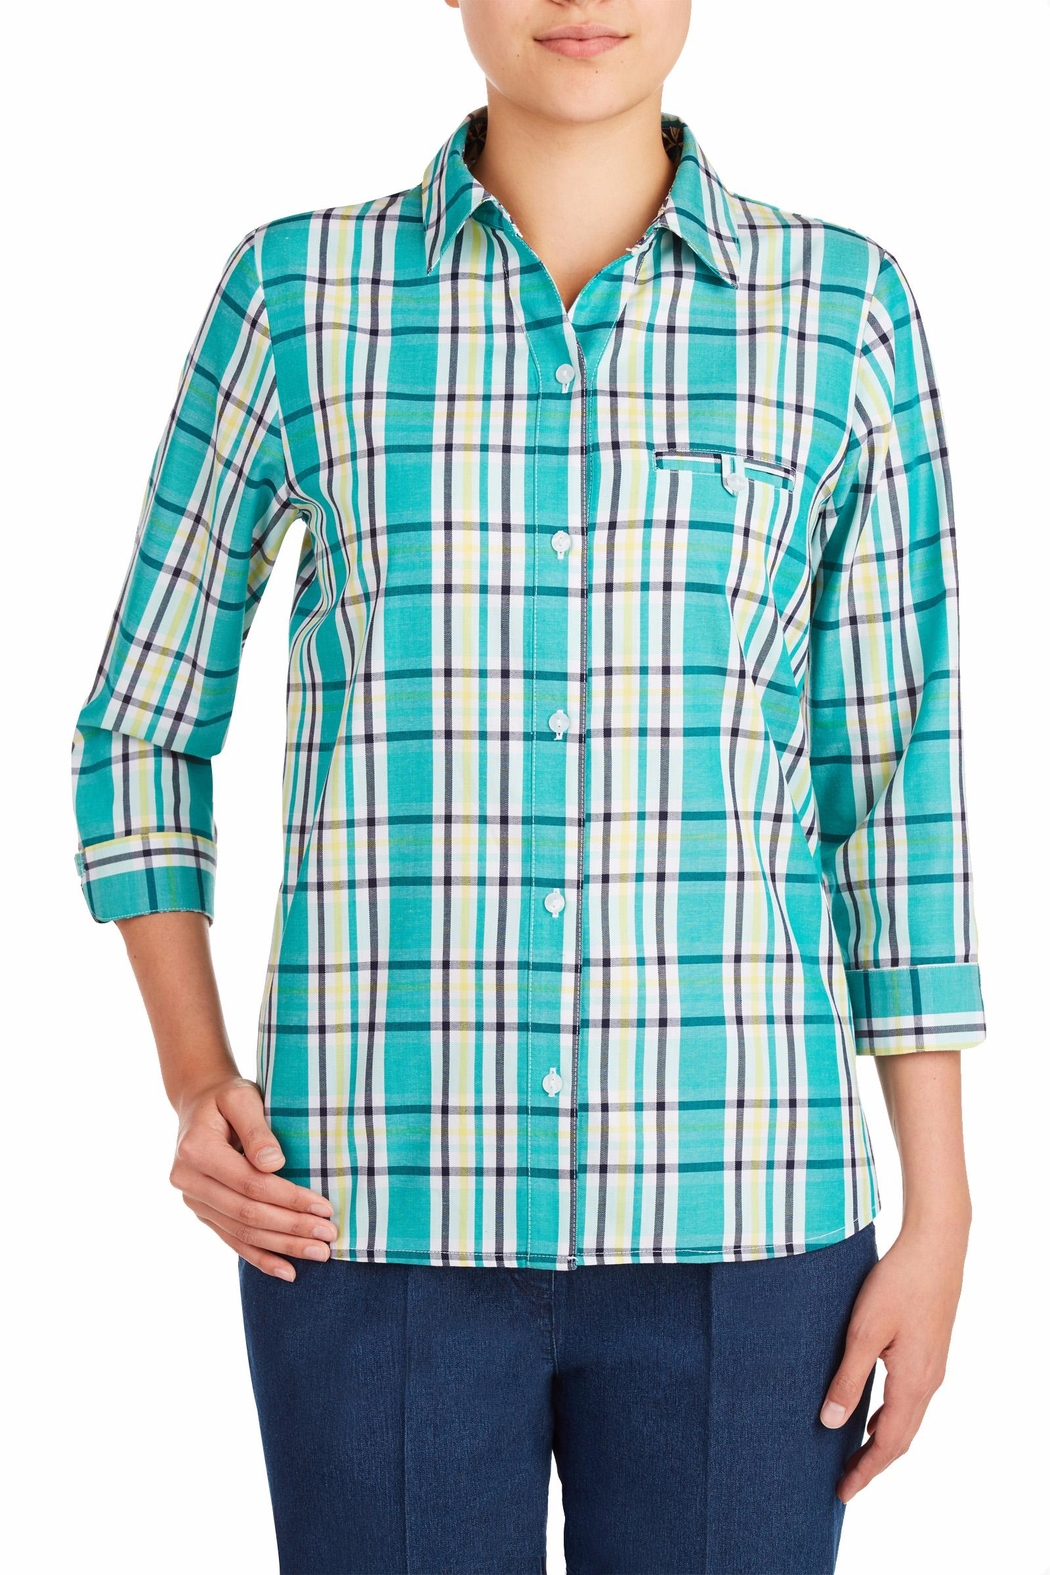 Allison Daley Blue Plaid Blouse - Main Image